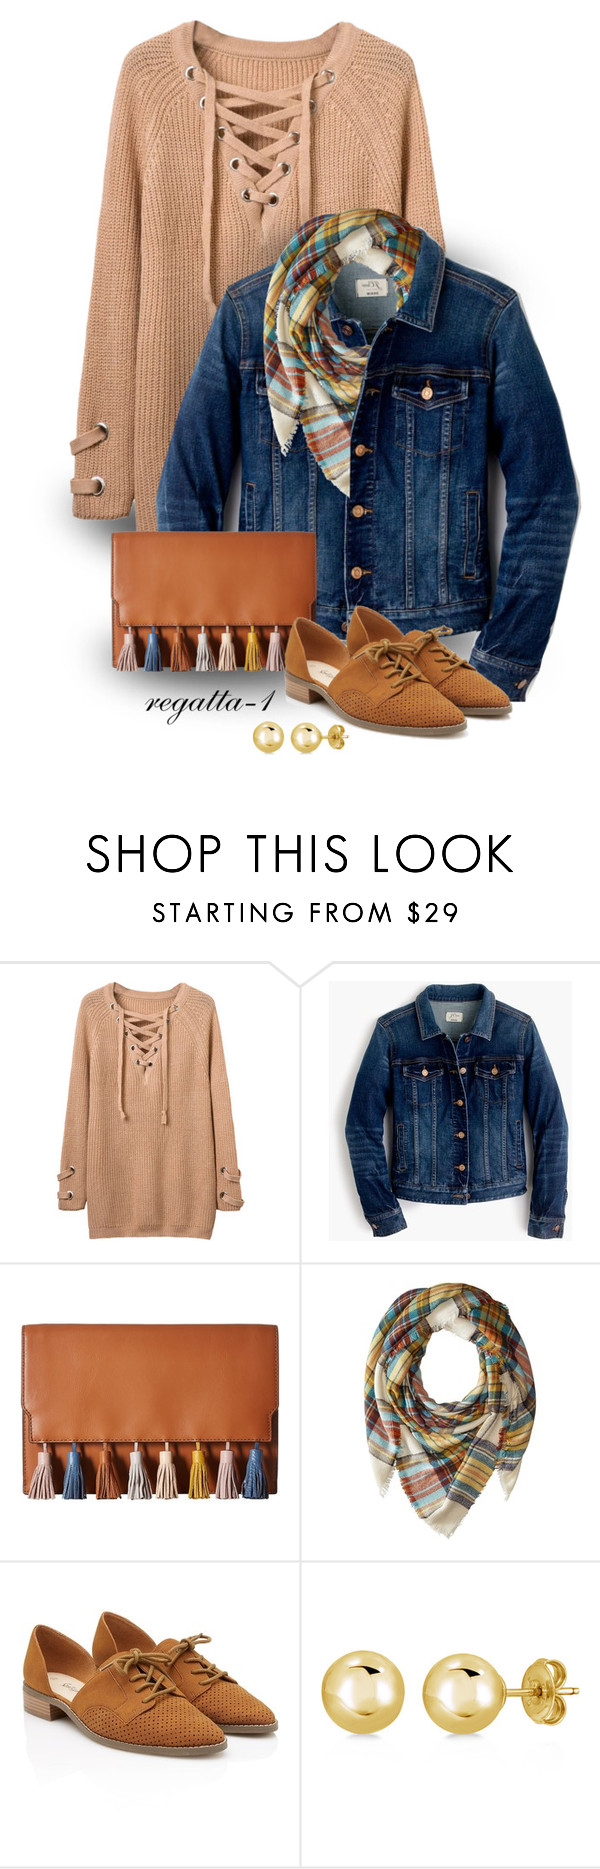 """Ready for Fall!"" by regatta-1 ❤ liked on Polyvore featuring J.Crew, Rebecca Minkoff, Steve Madden and BERRICLE"